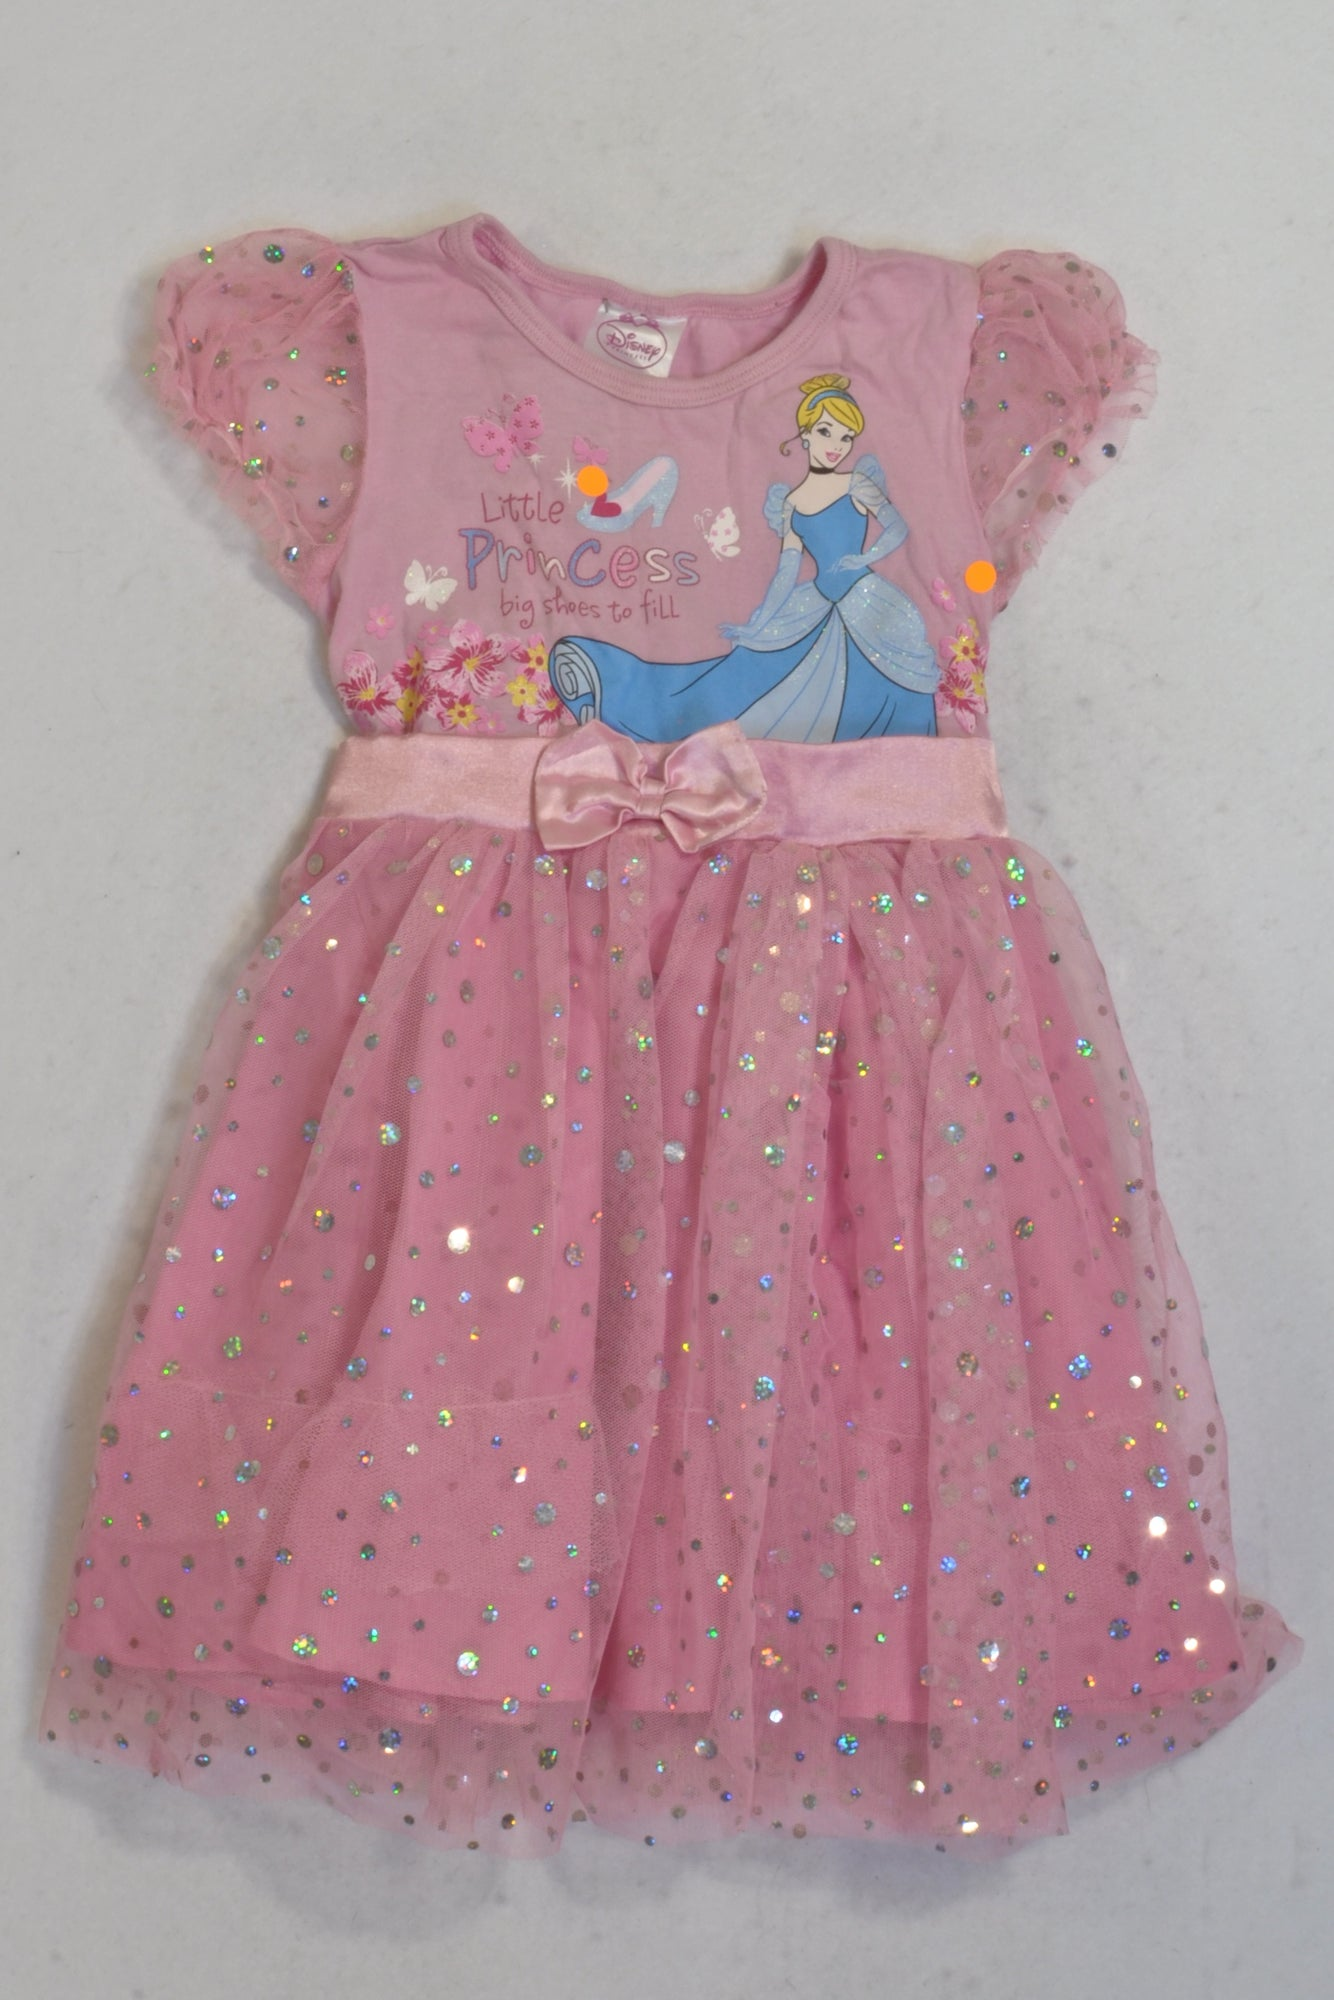 Edgars Pink Sequin Tulle Princess Dress Girls 18-24 months